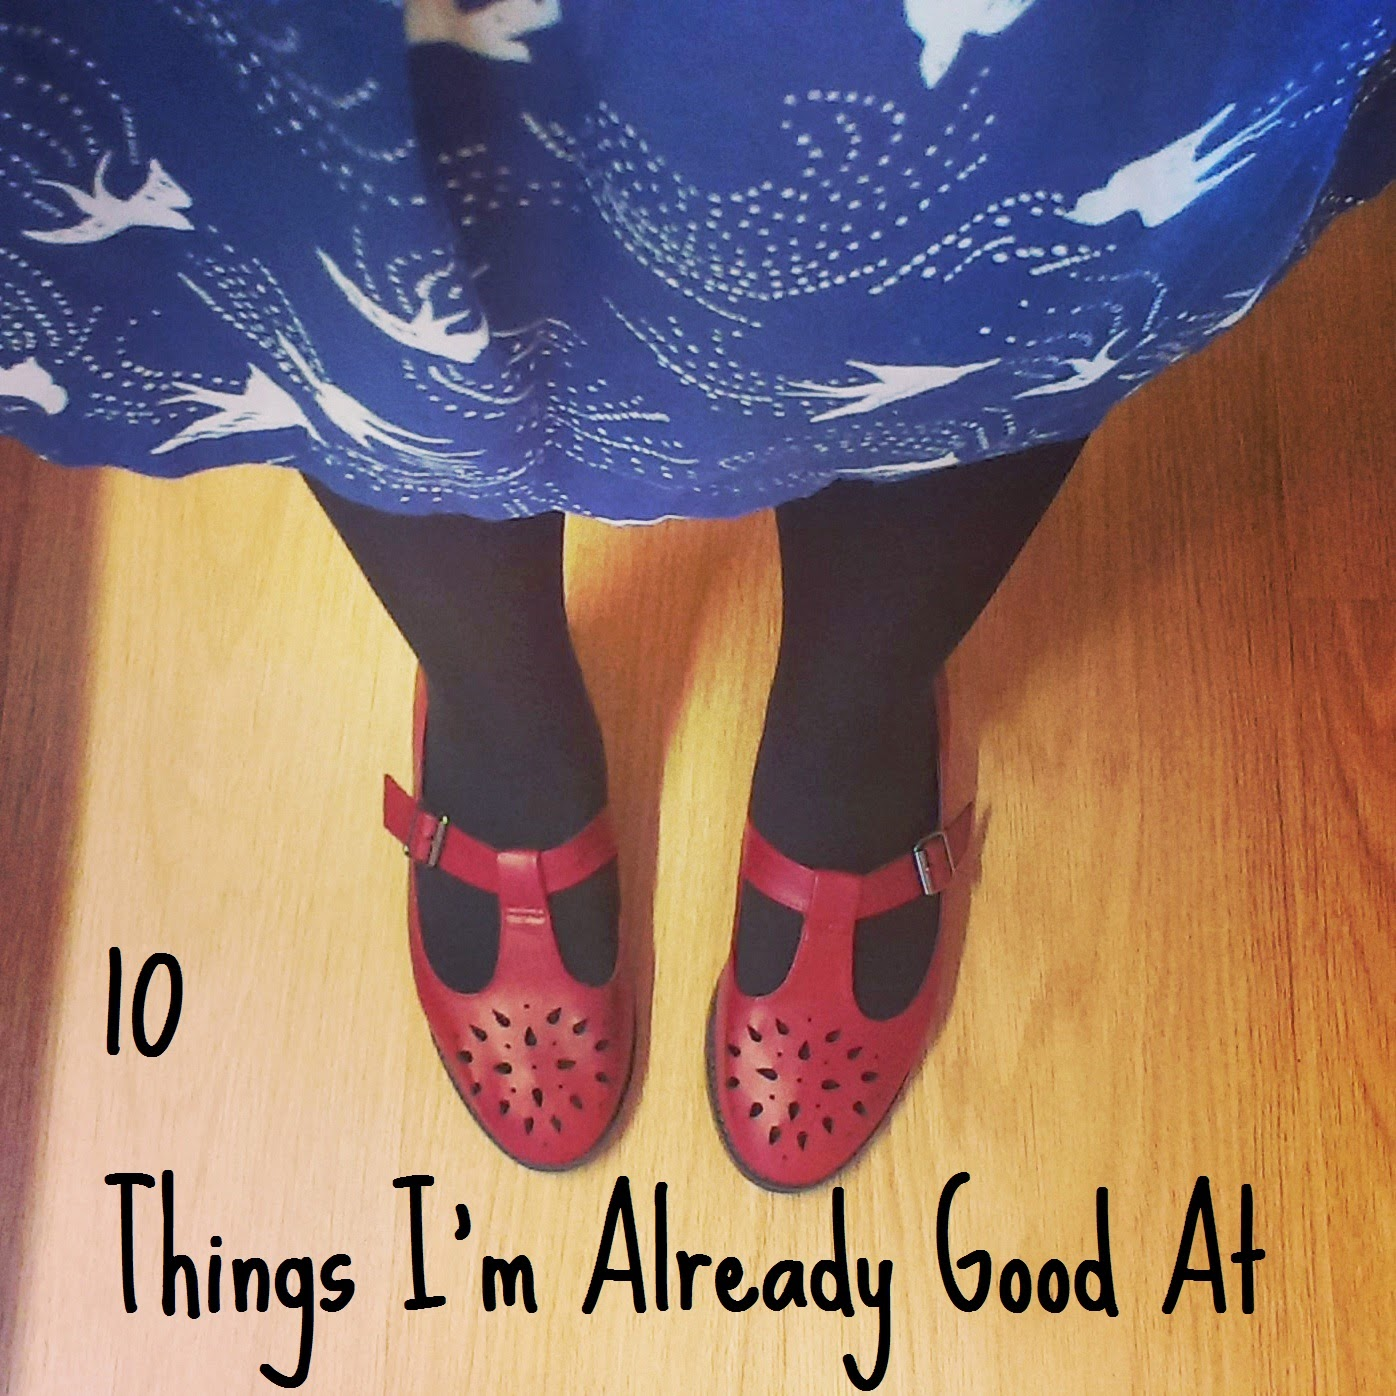 10 Things I'm Already Good At